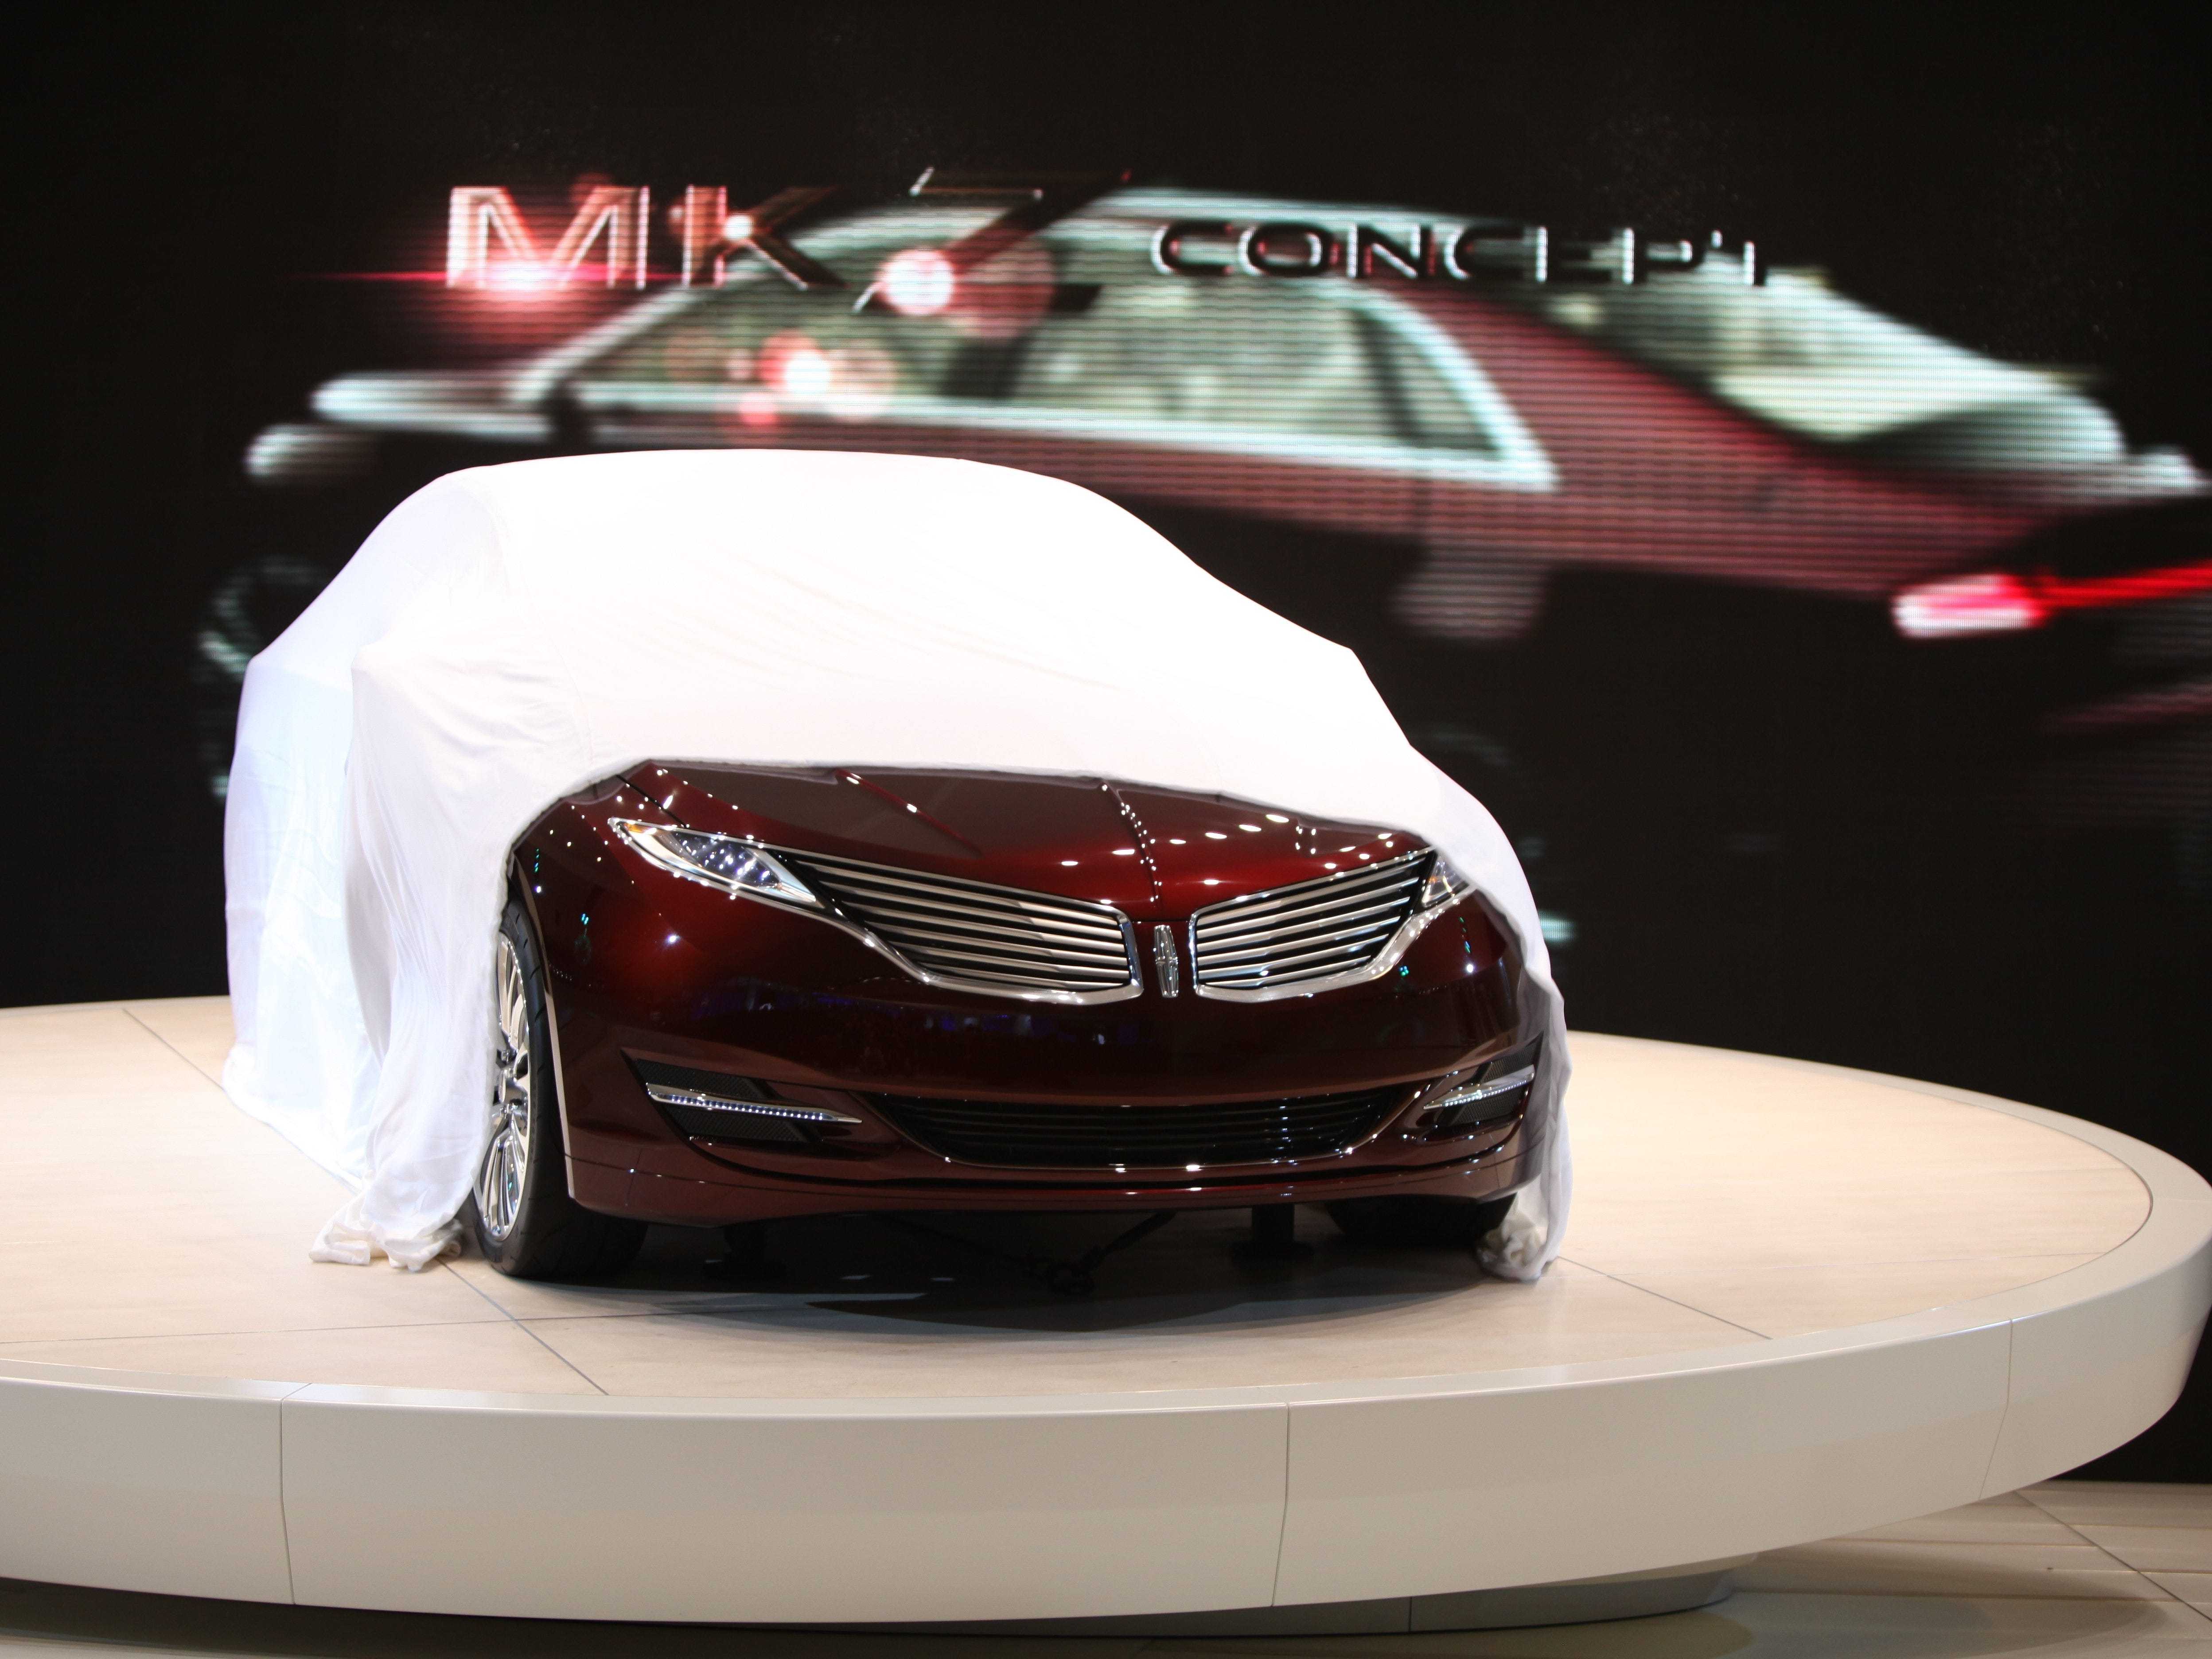 The Lincoln MKZ concept is unveiled at the North American International Auto Show at Cobo Center in Detroit, Tuesday, Jan 10, 2012.